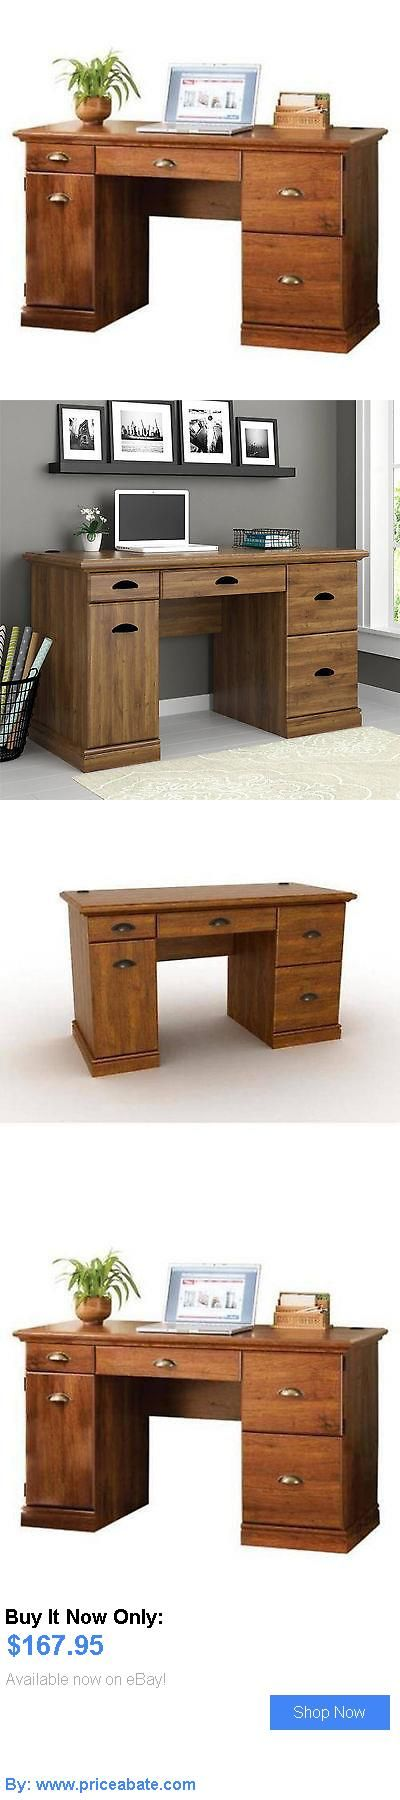 Office Furniture: Computer Desk For Home Writing Table Wood Workstation Office Furniture Oak New BUY IT NOW ONLY: $167.95 #priceabateOfficeFurniture OR #priceabate